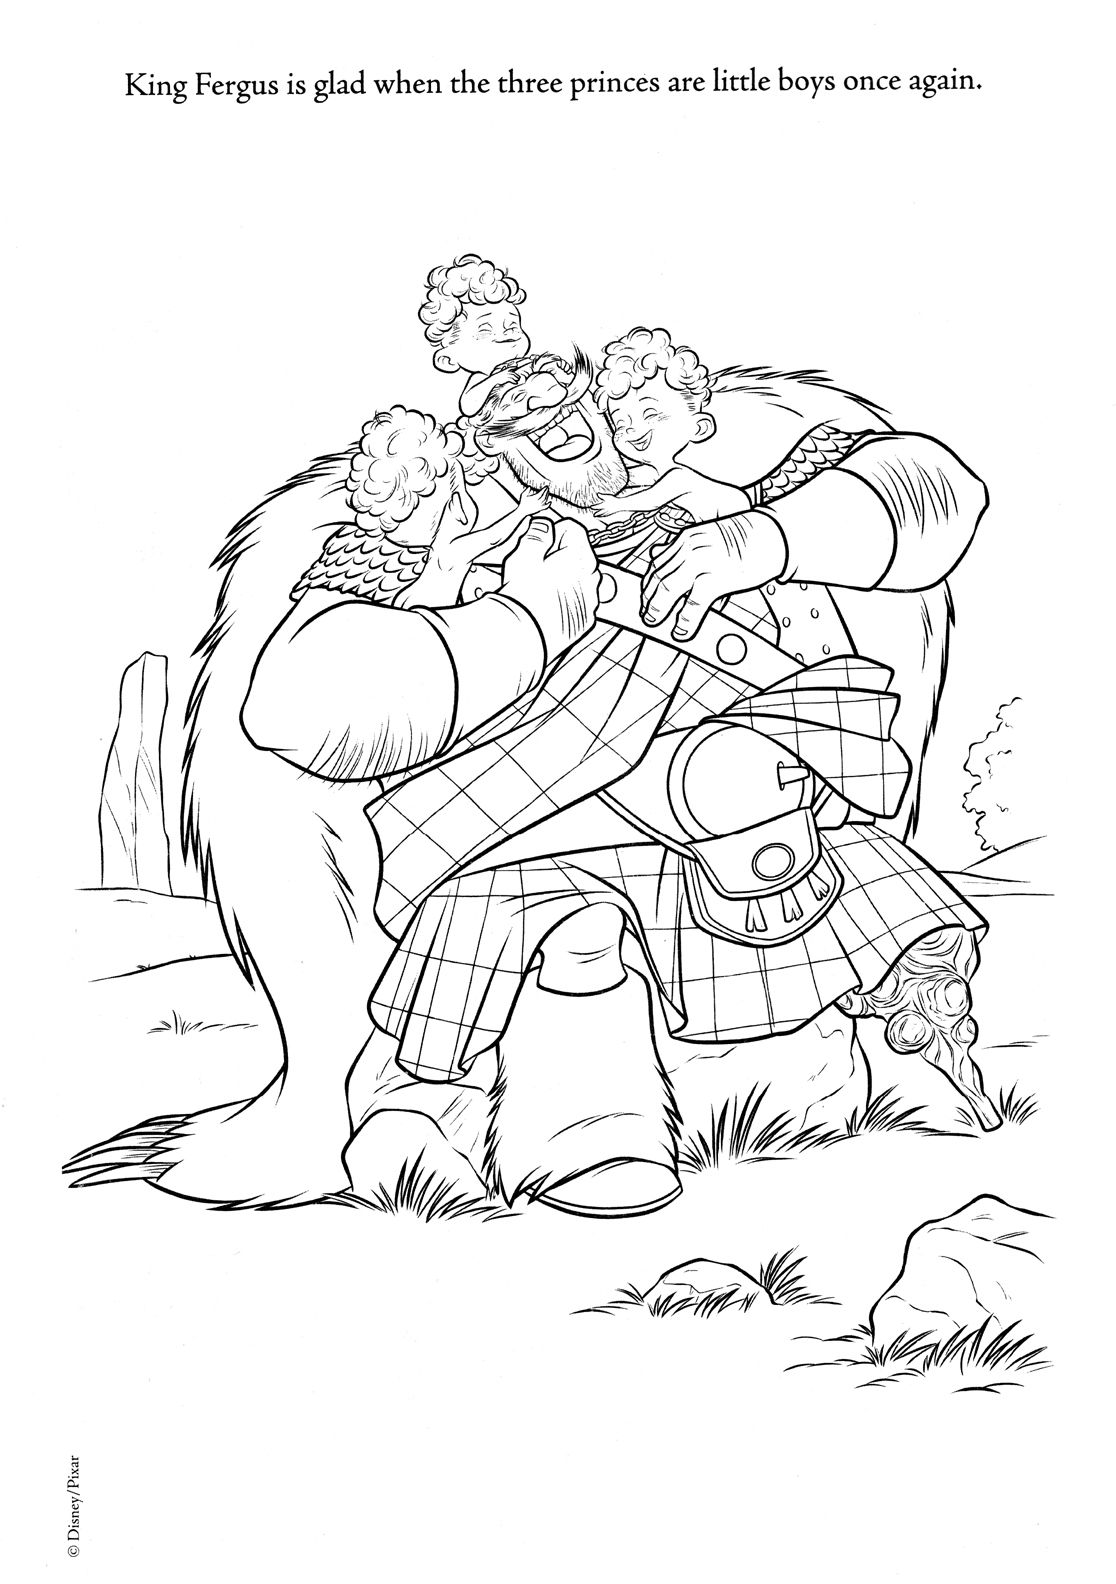 Coloring page from \